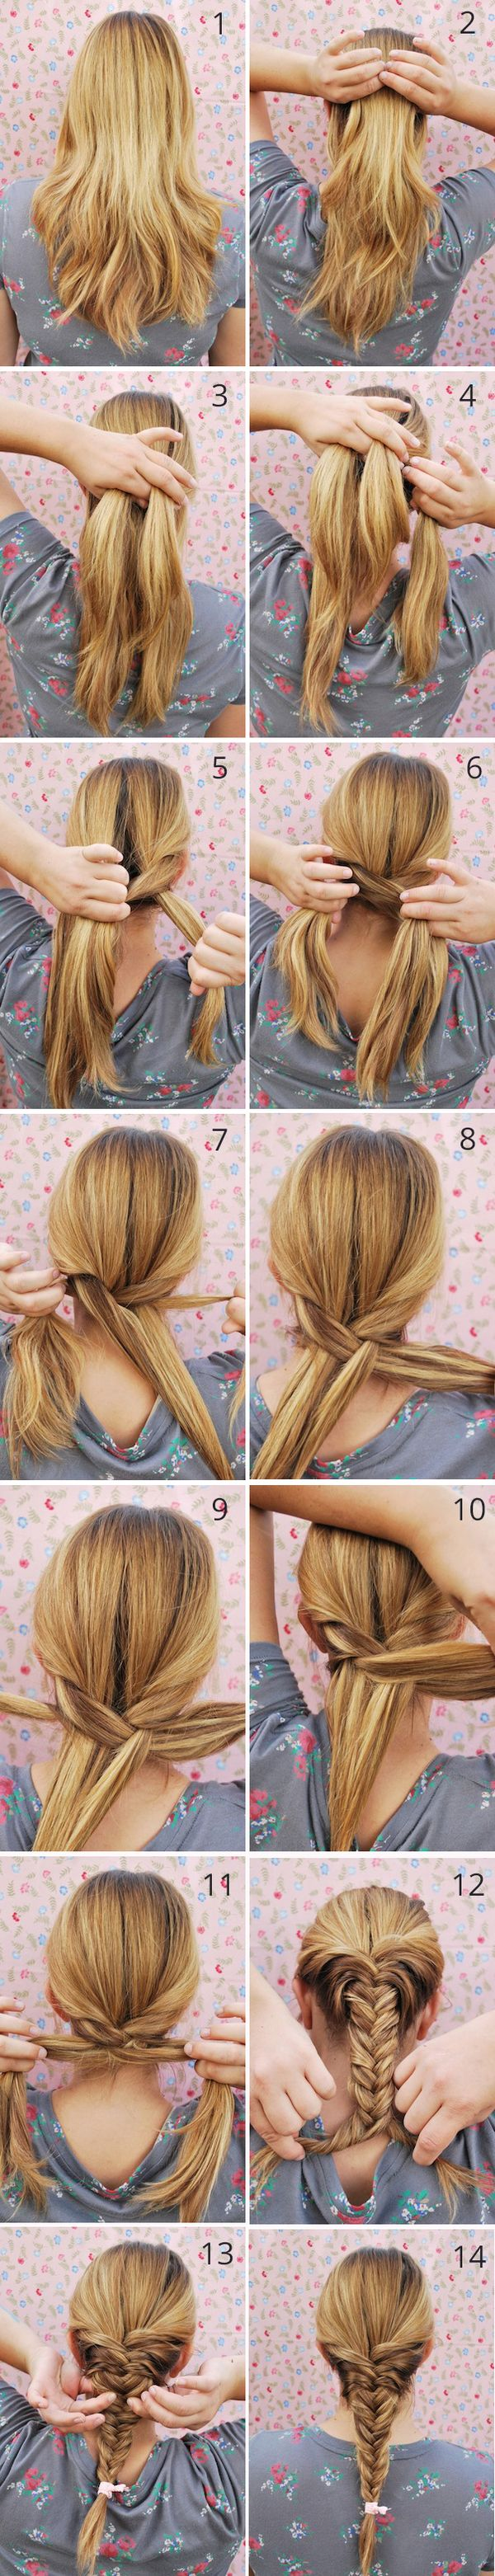 fishtail braid tutorial - photo #25